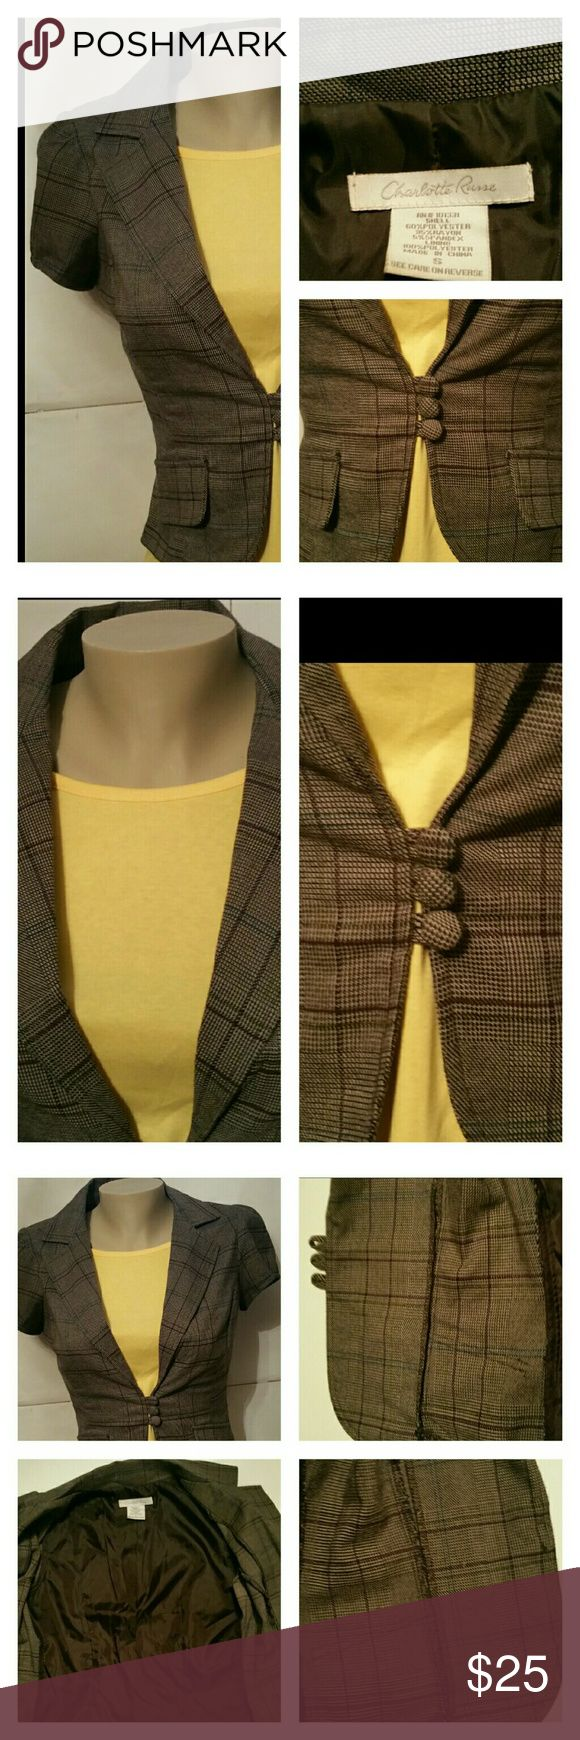 Career Blazer by Charlotte Russe Brown Plaid S EUC Charlotte Russe   Excellent used condition   Brown plaid  blazer Crop style Form fitting Short sleeves Open collar Plunging vneck Front 3 button closure Partially lined Size small Pit to pit measures 18 inches  Length from shoulders measures 19 inches  Shell: 60% 35% rayon 5% spandex  Lining: 100% polyester  Made in China Charlotte Russe Jackets & Coats Blazers